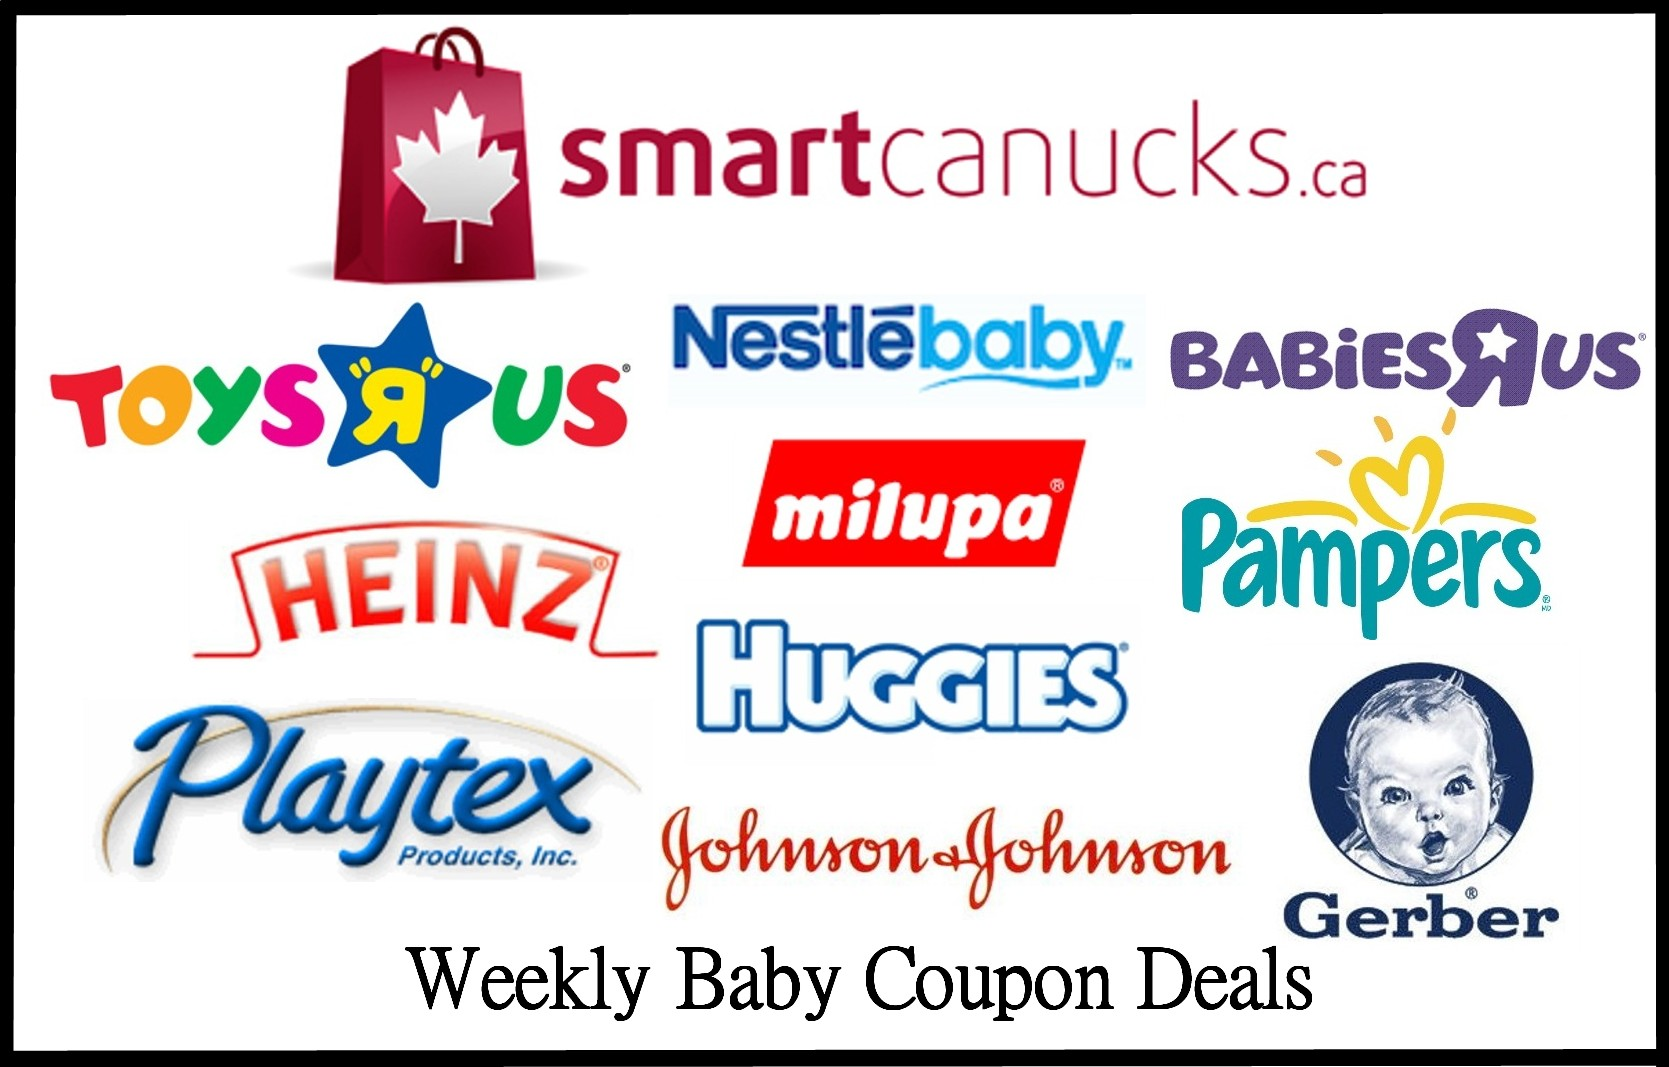 Canadian Baby Deals To Go With Flyer Specials May 25-31 ...